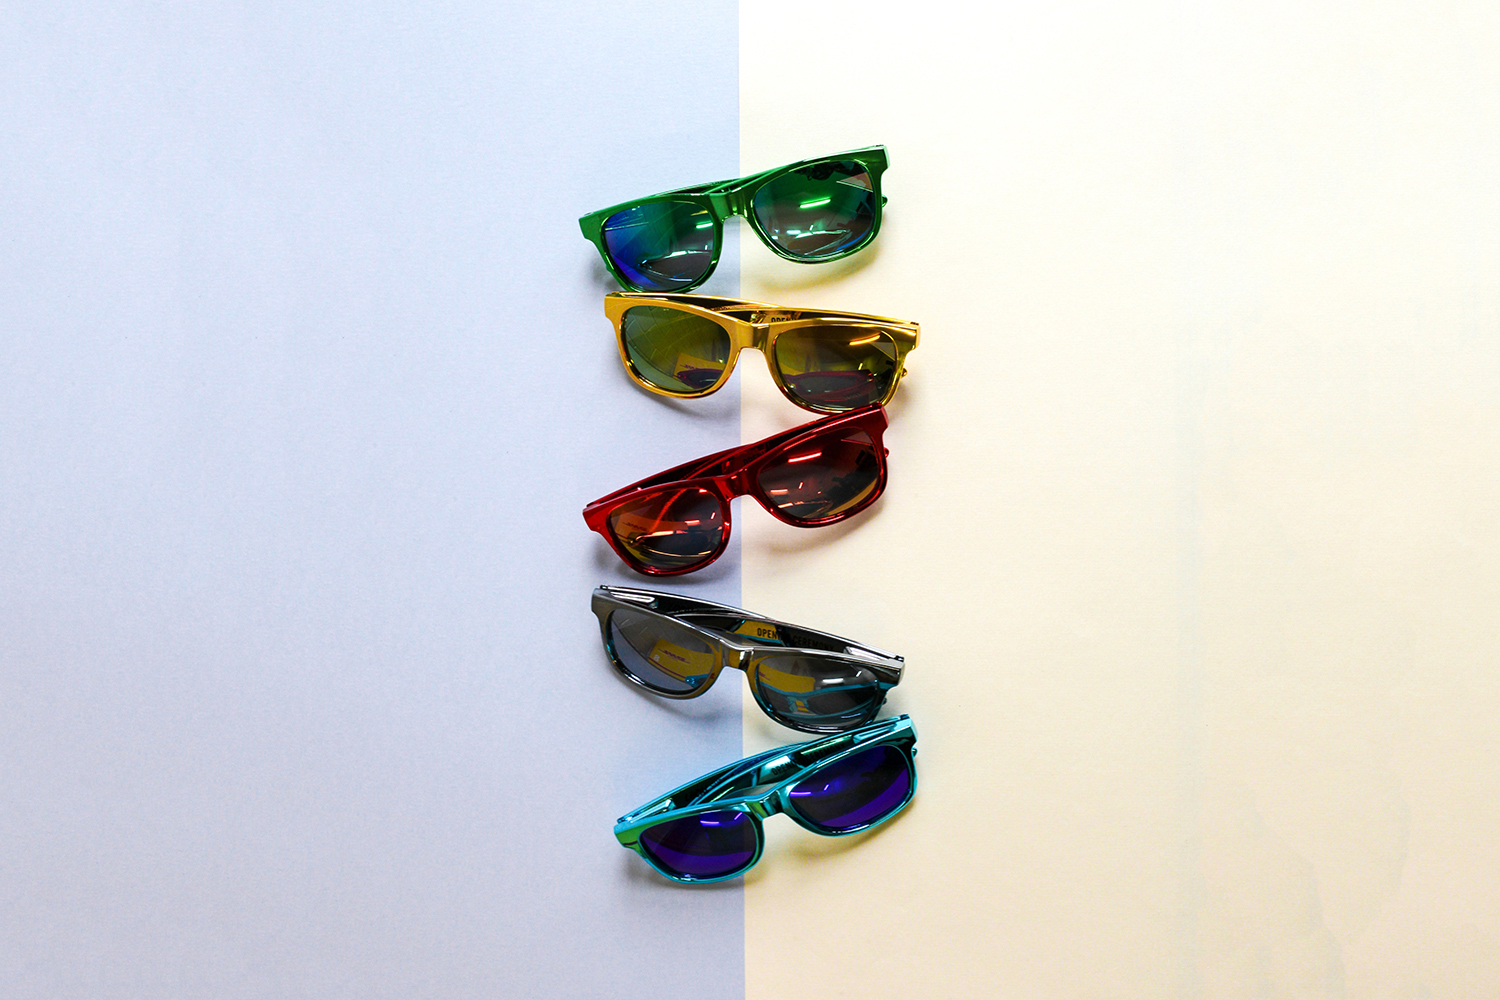 Local Supply and Opening Ceremony Celebrate the Olympics With Sunglasses Collection